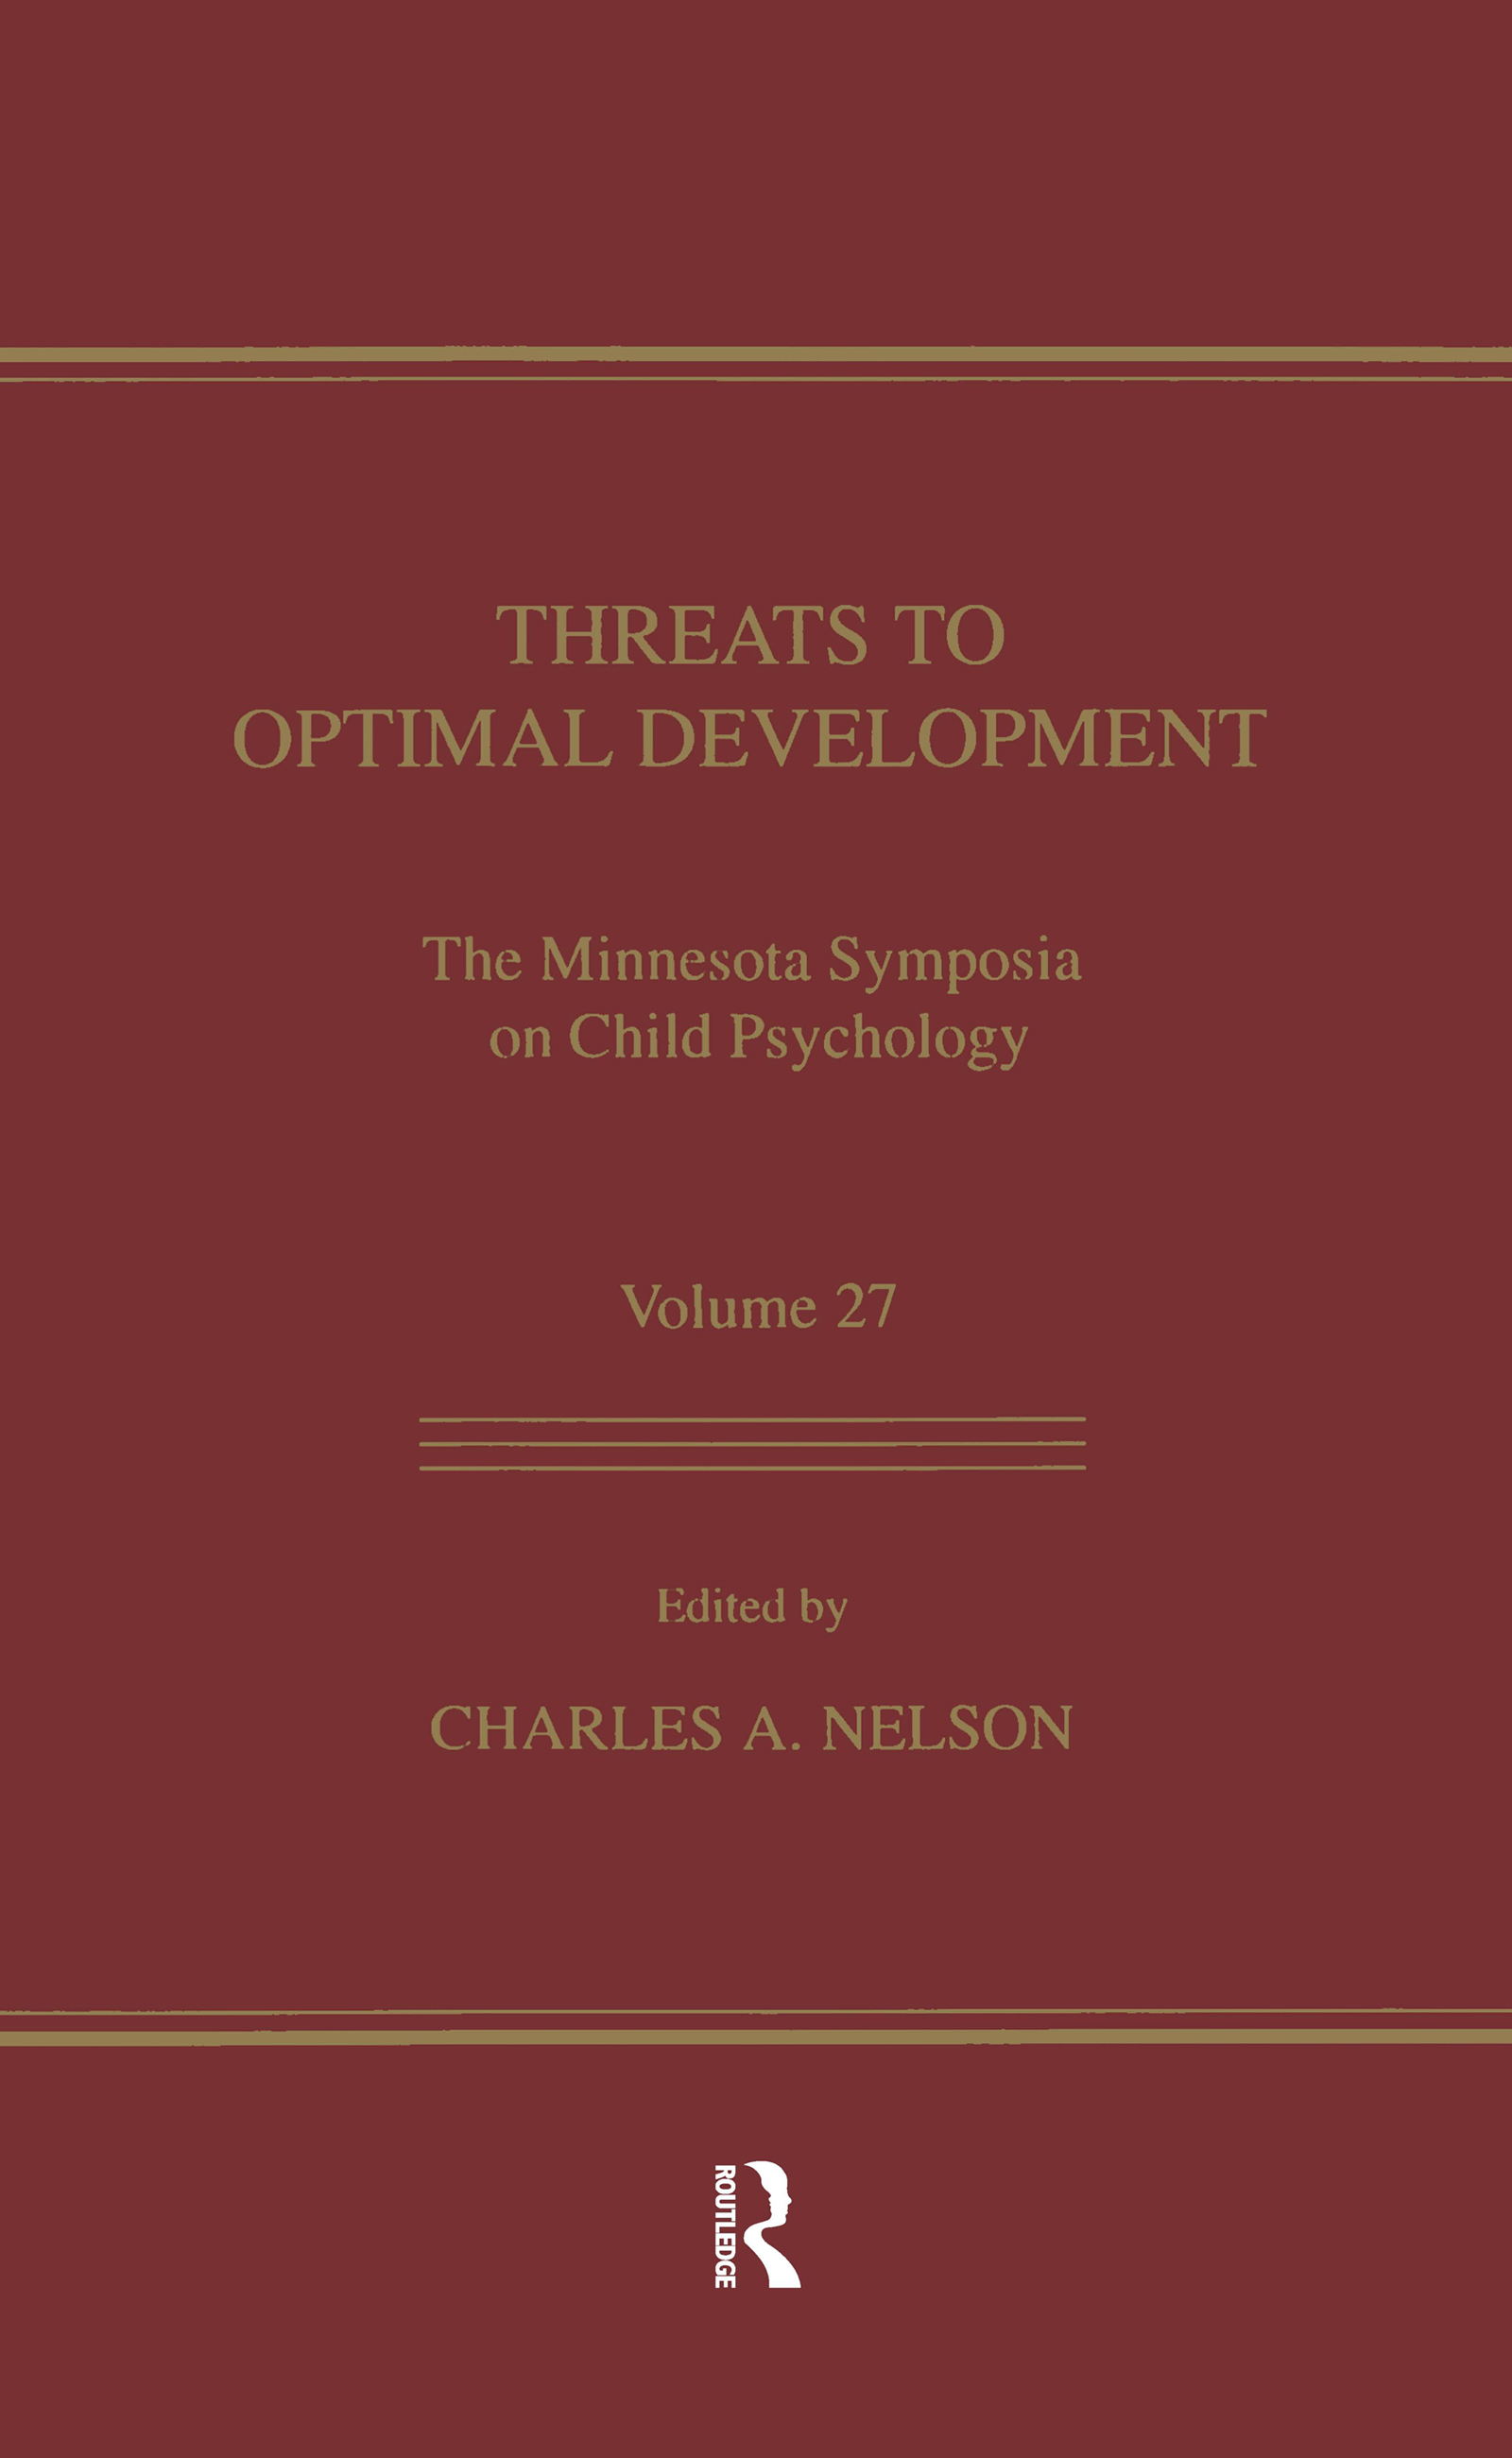 Threats To Optimal Development: Integrating Biological, Psychological, and Social Risk Factors: the Minnesota Symposia on Child Psychology, Volume 27 book cover